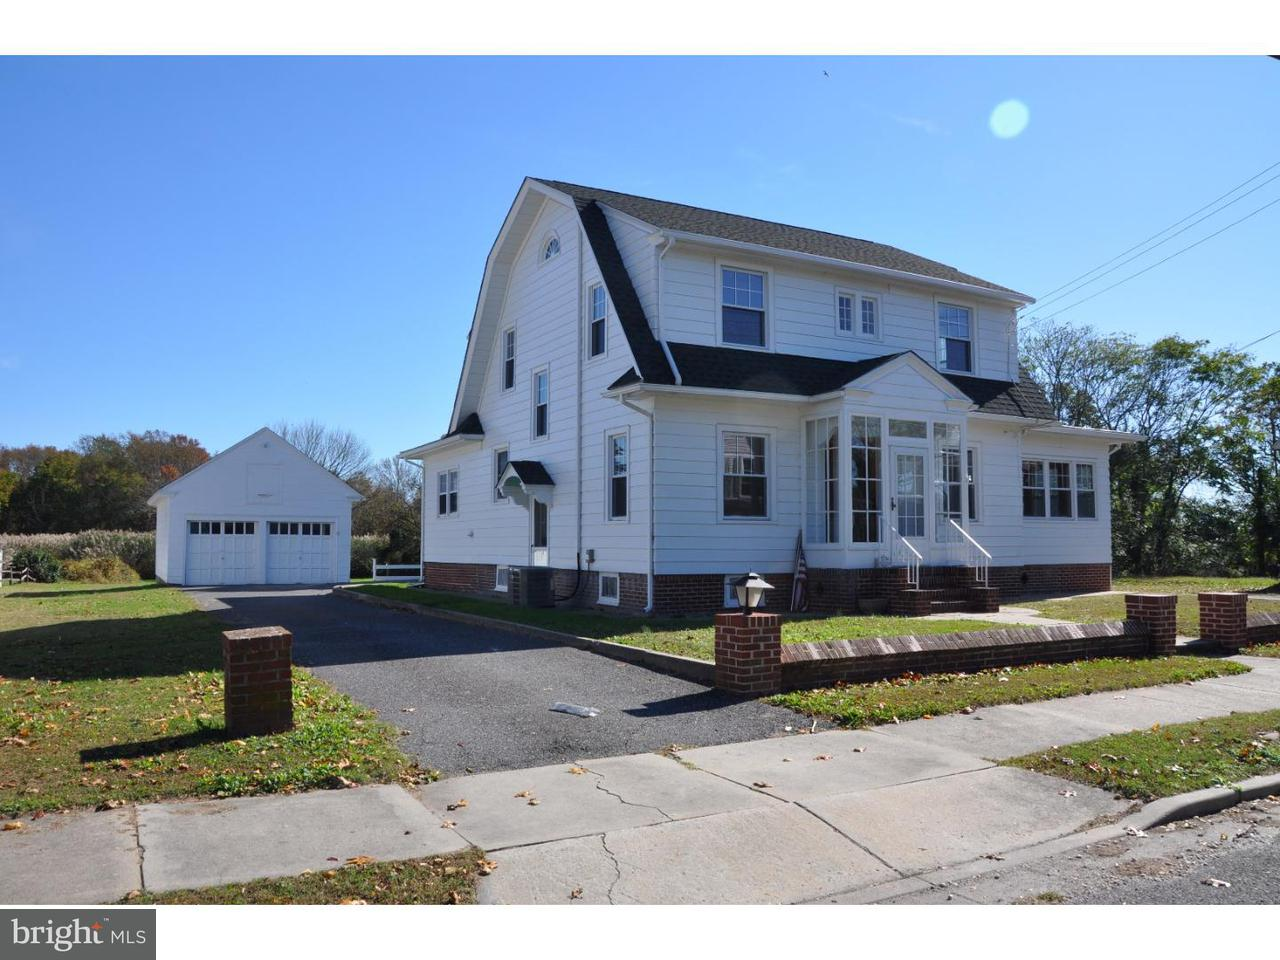 Single Family Home for Sale at 2526 HIGH Street Port Norris, New Jersey 08349 United States